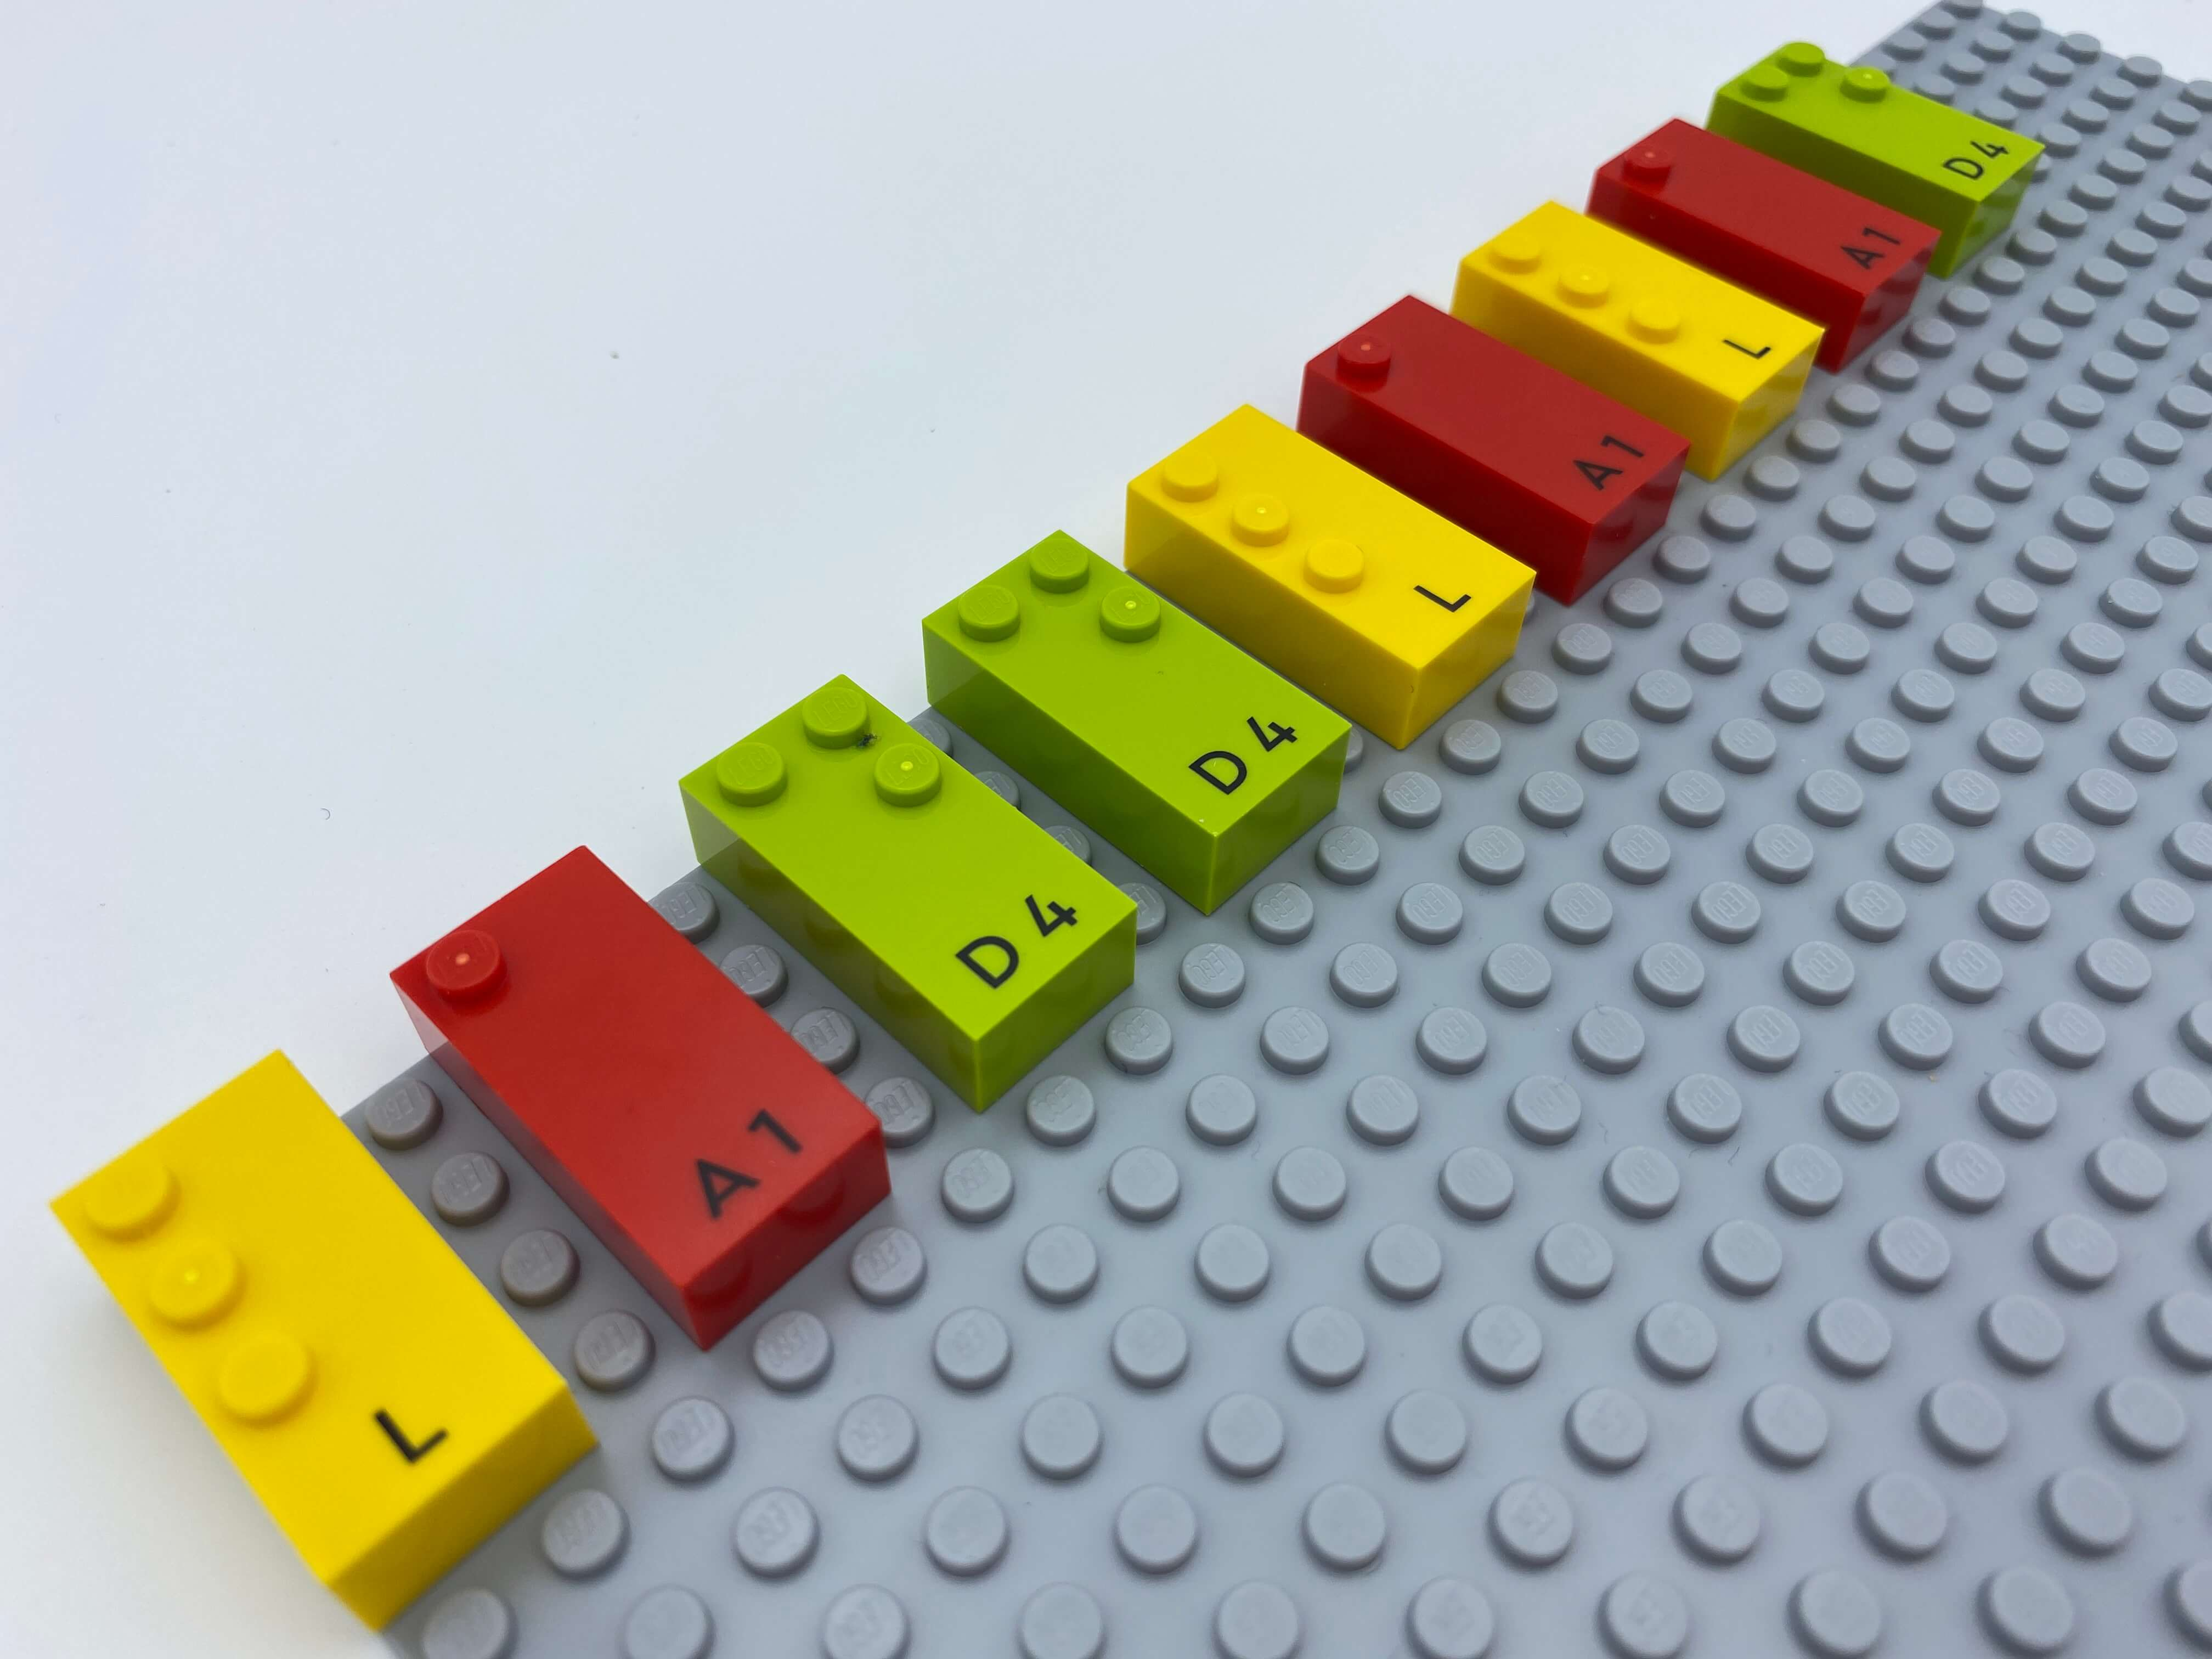 3 towers of identical letter bricks: l, a, d.